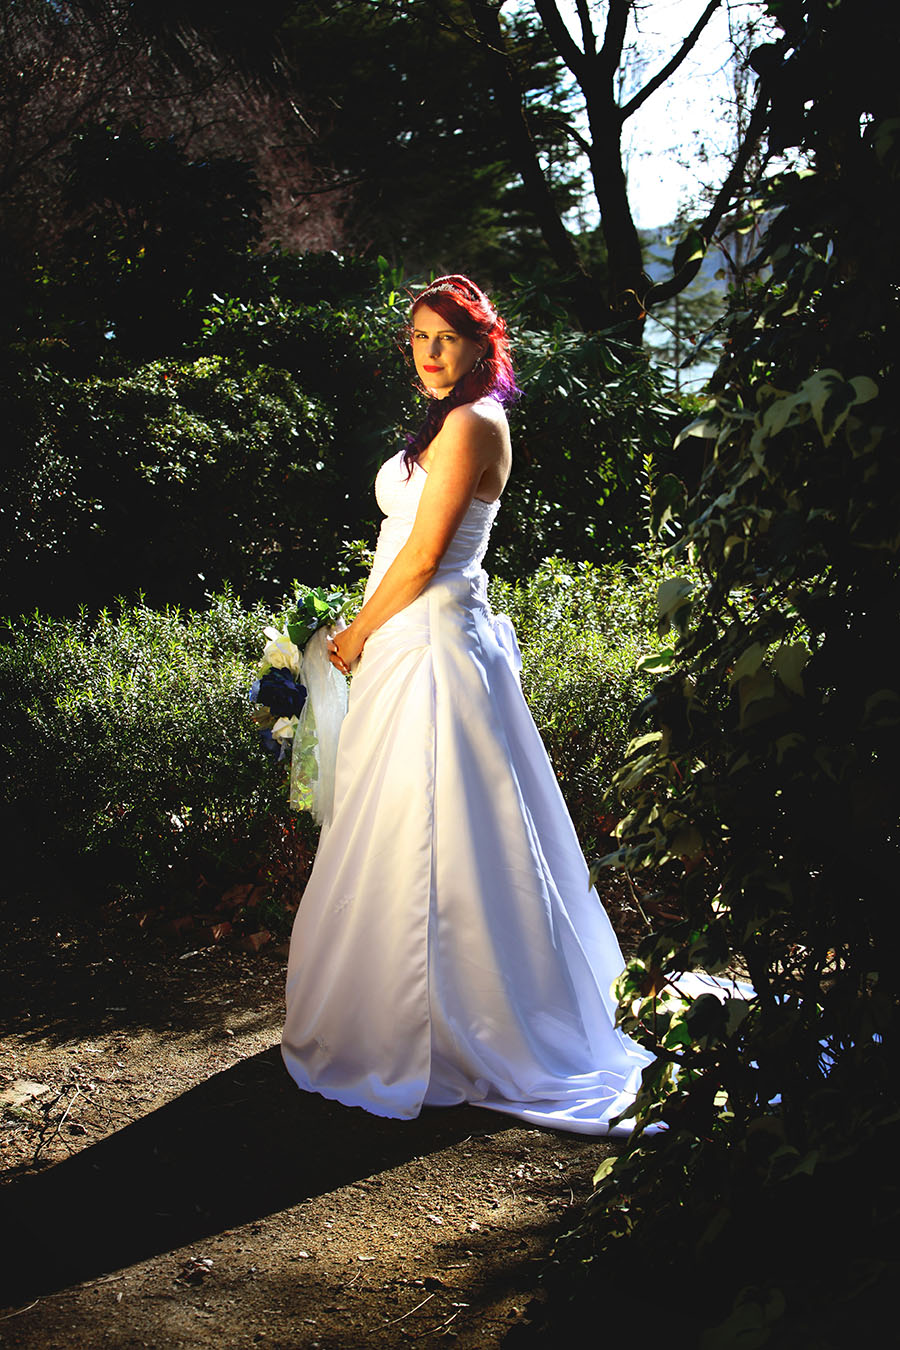 Bridal portrait - Pre ceremony photoshoot - Lennox Park, Canberra ACT. Bride with reflective light, glowing